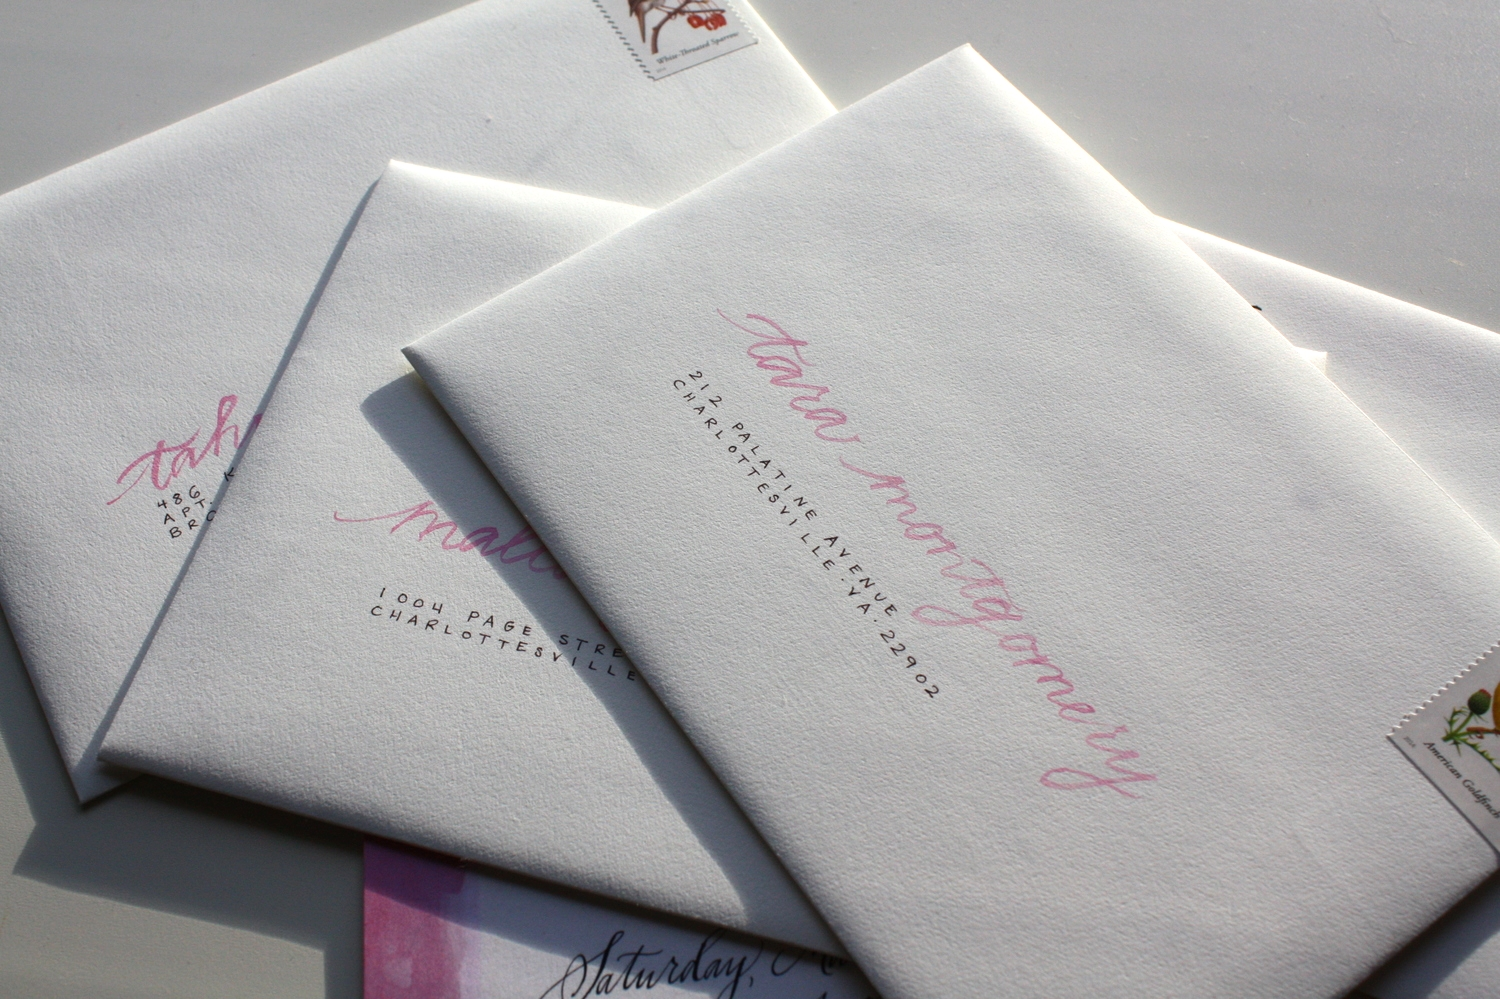 Bluestocking Calligraphy / Bridal shower invitation envelopes